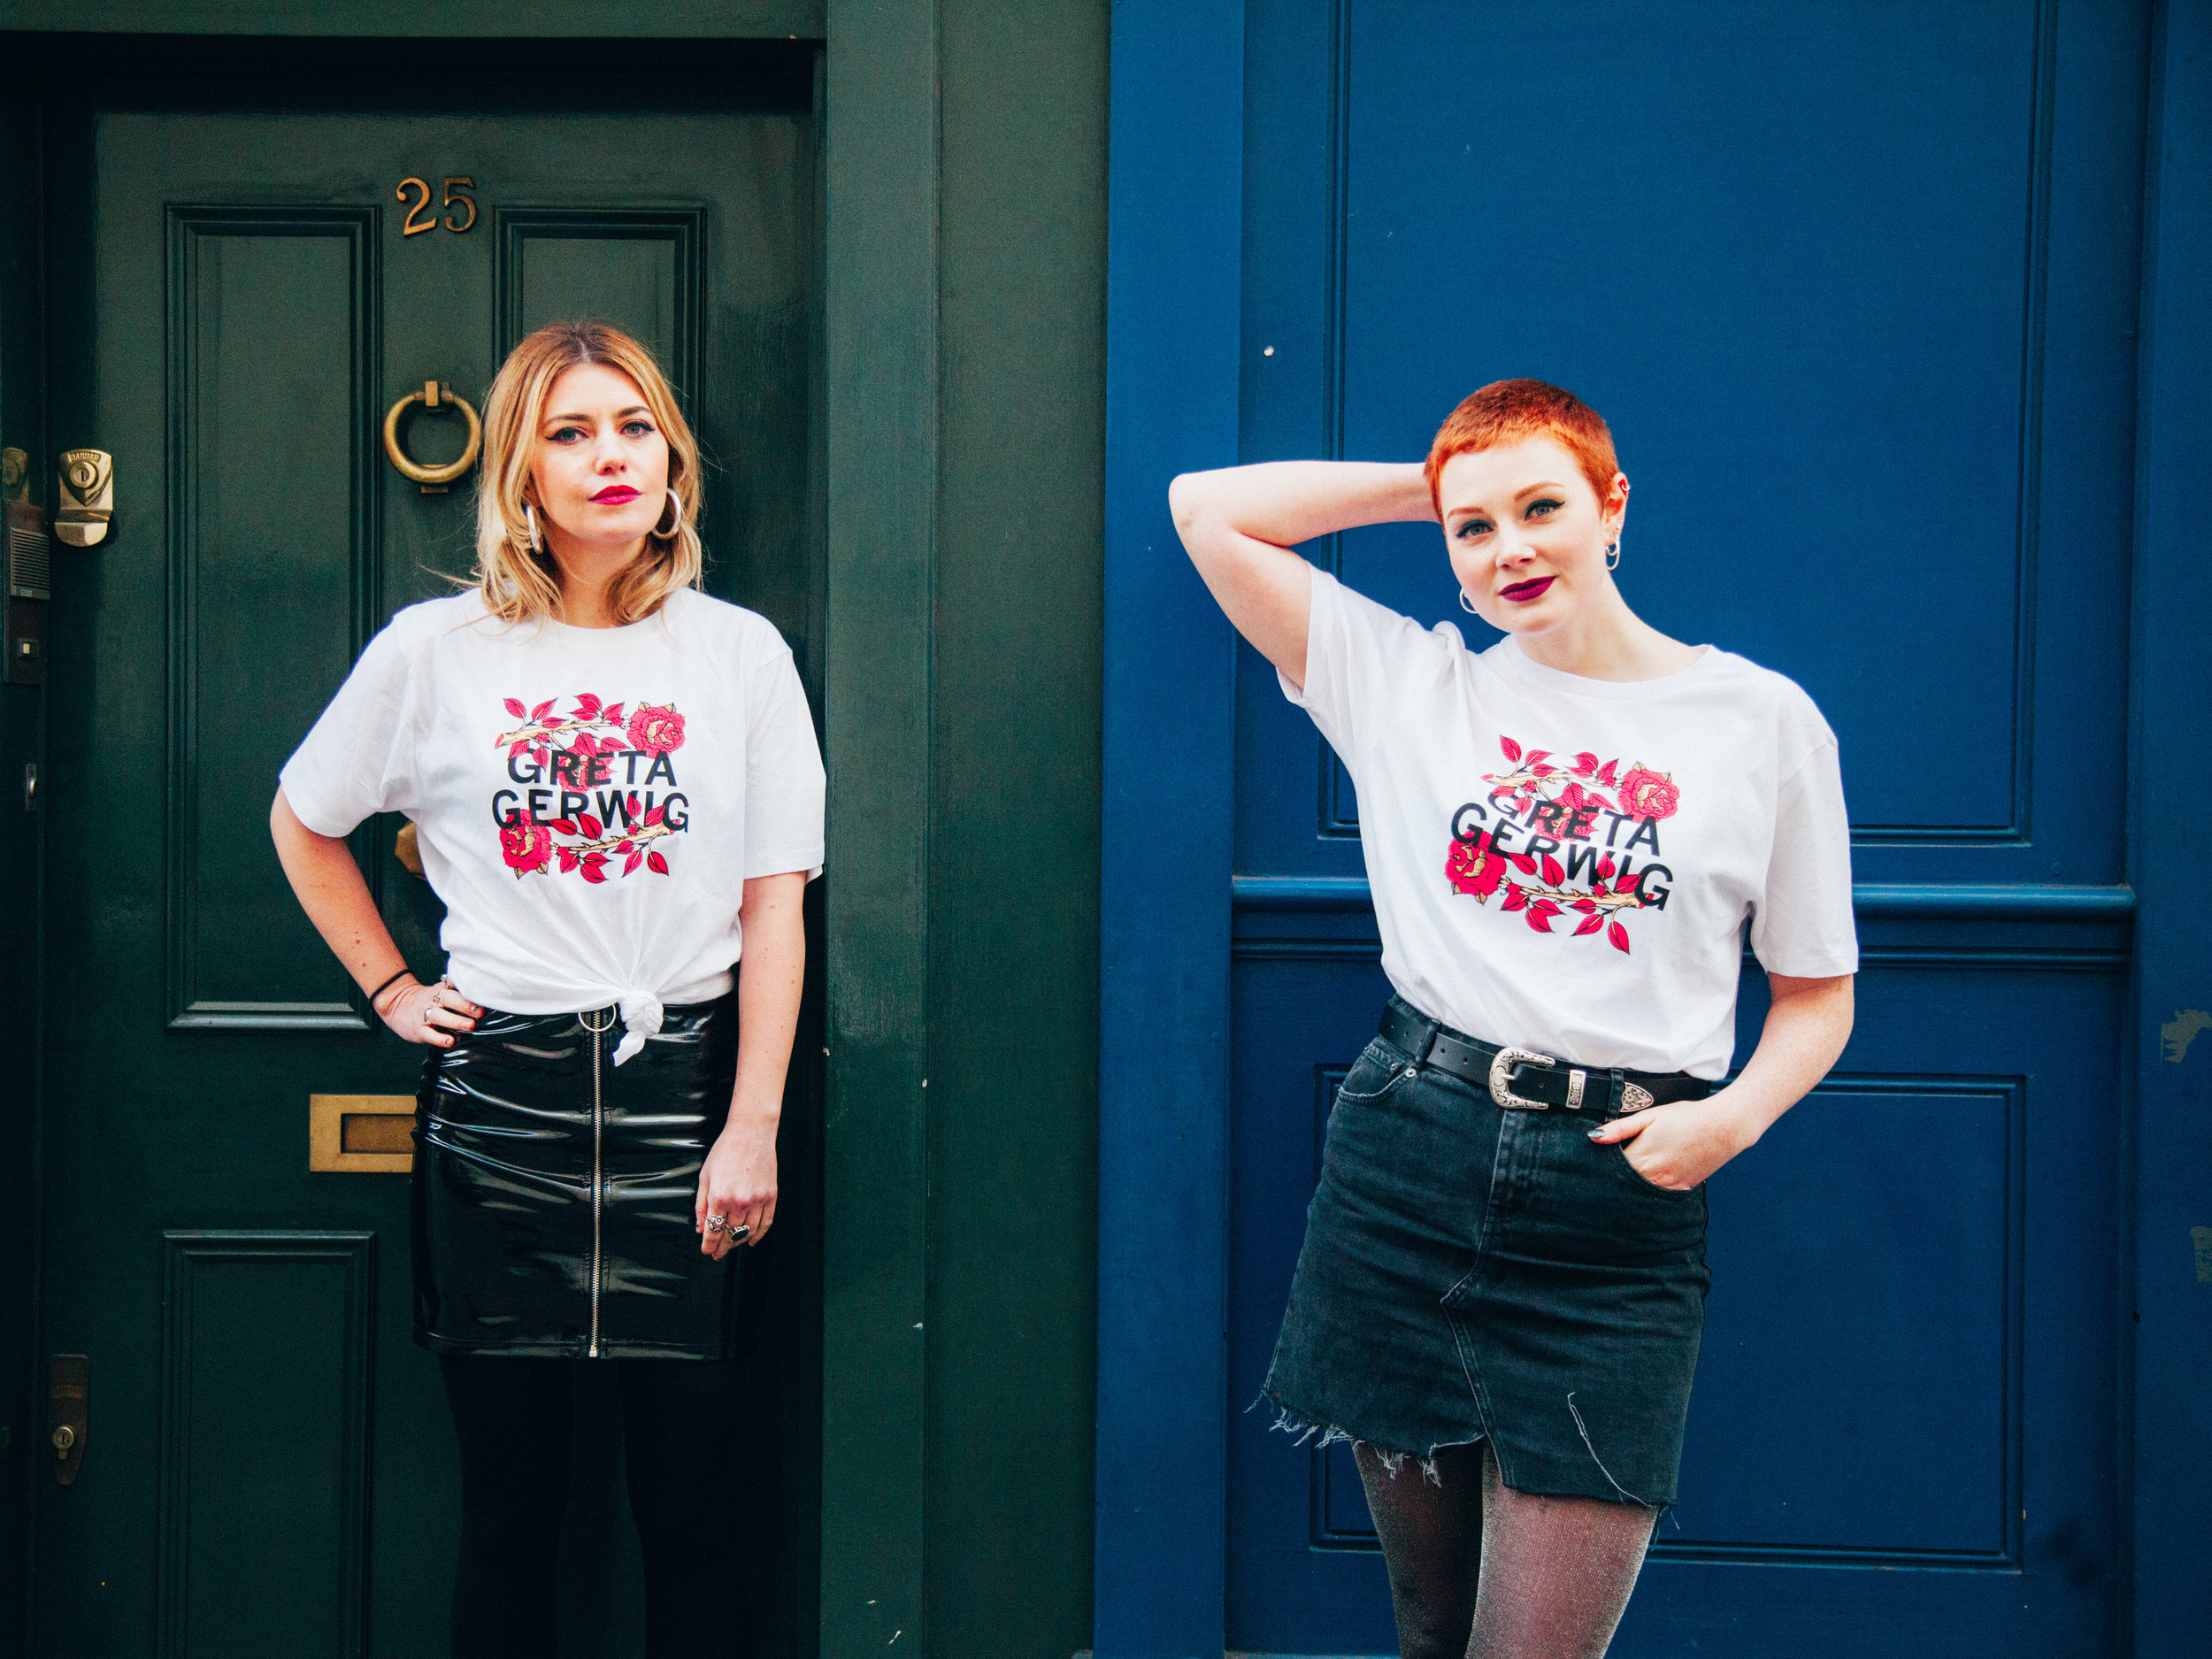 Limited Edition Greta Gerwig/Lady Bird t-shirts from Girls on Tops x Little White Lies